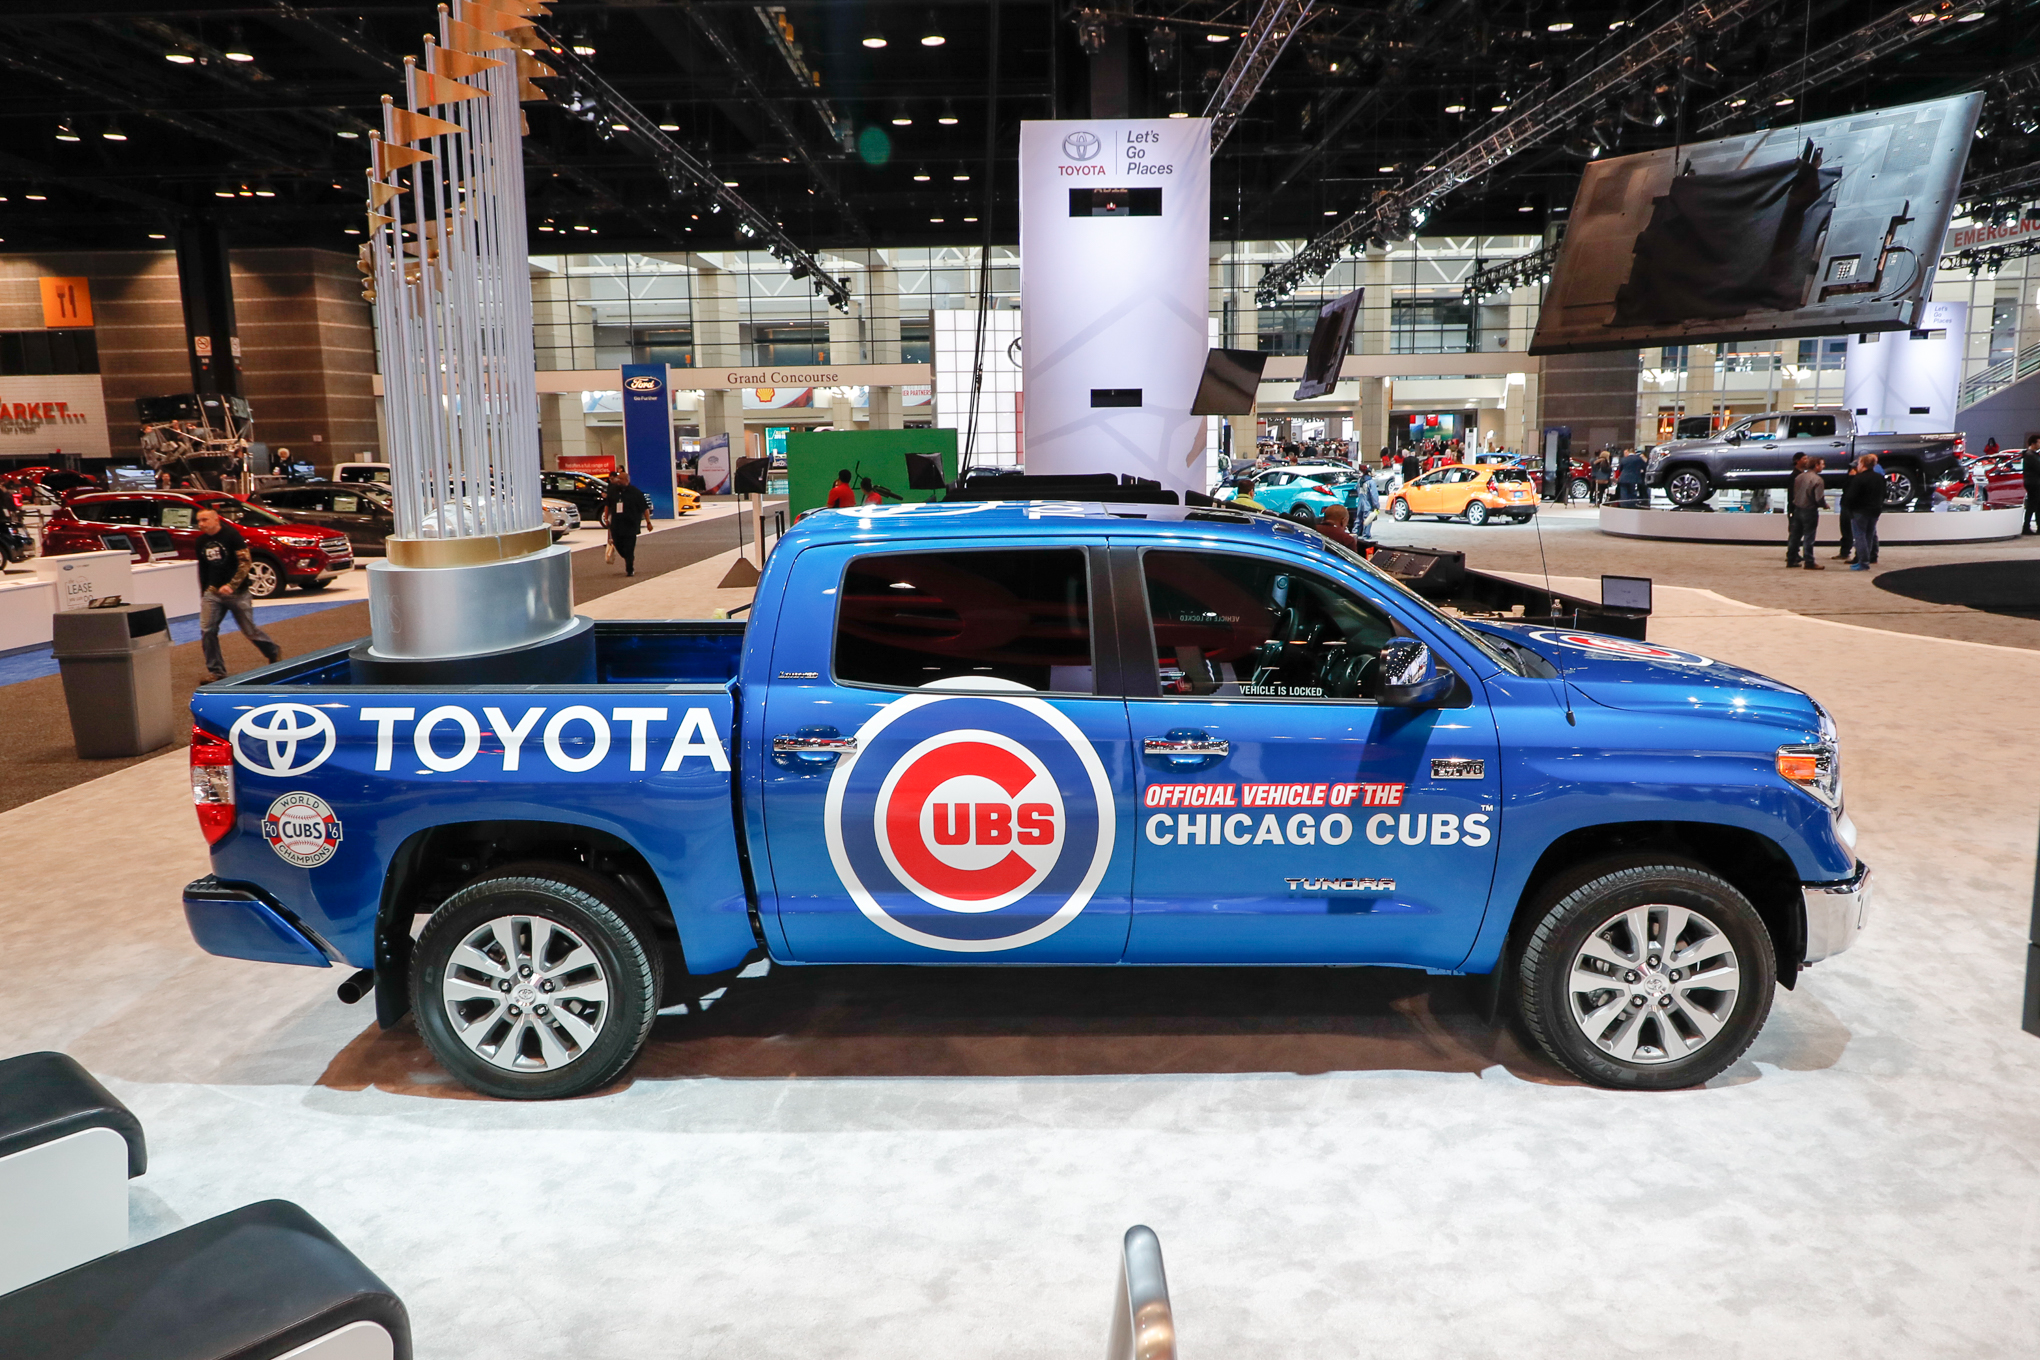 Toyota-Tundra-Chicago-Cubs-truck-side